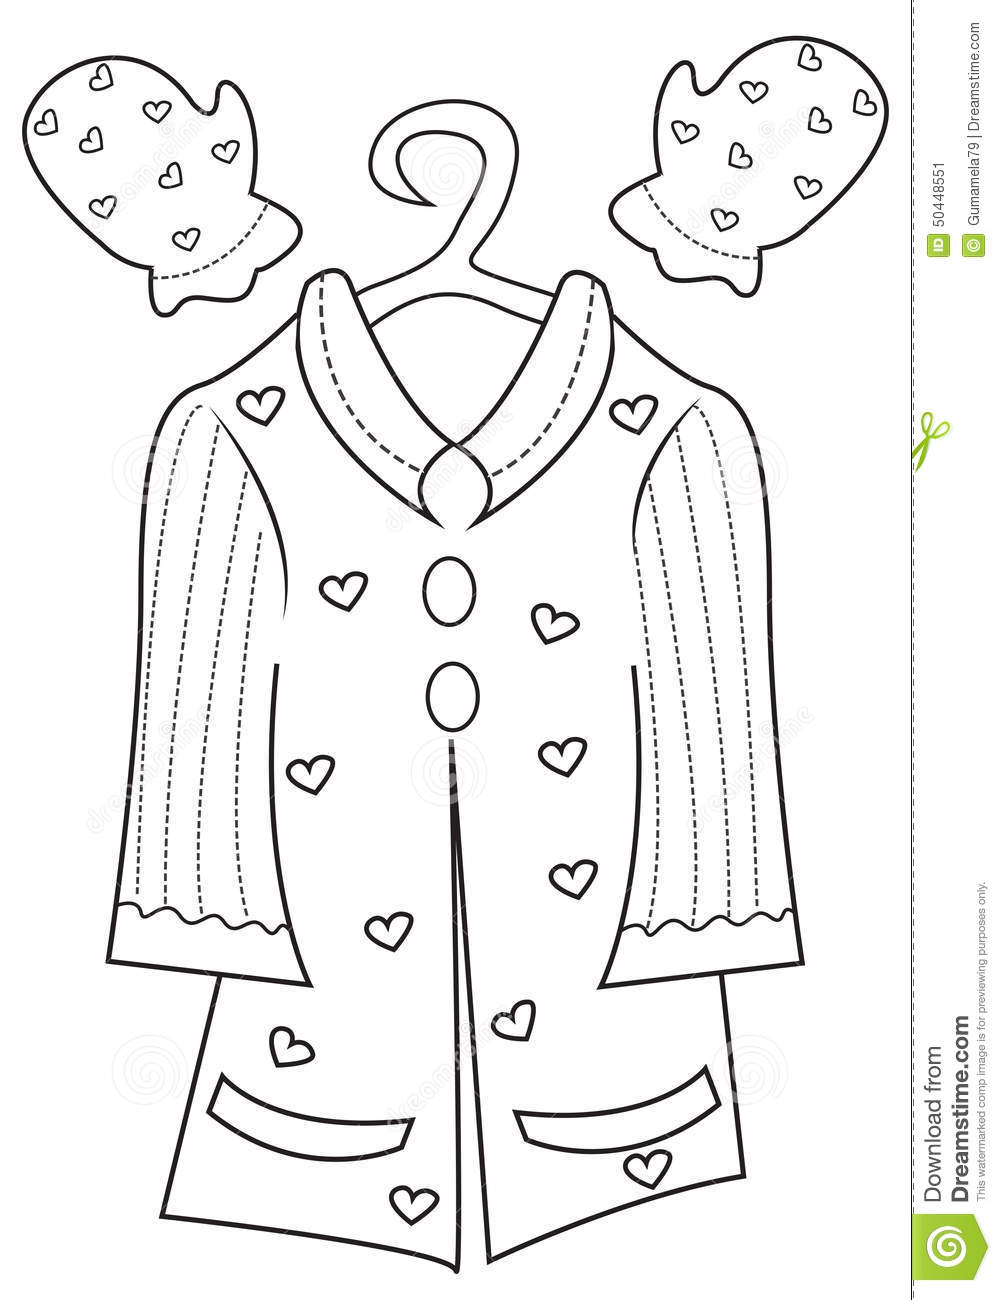 girls clothing coloring page stock illustration image